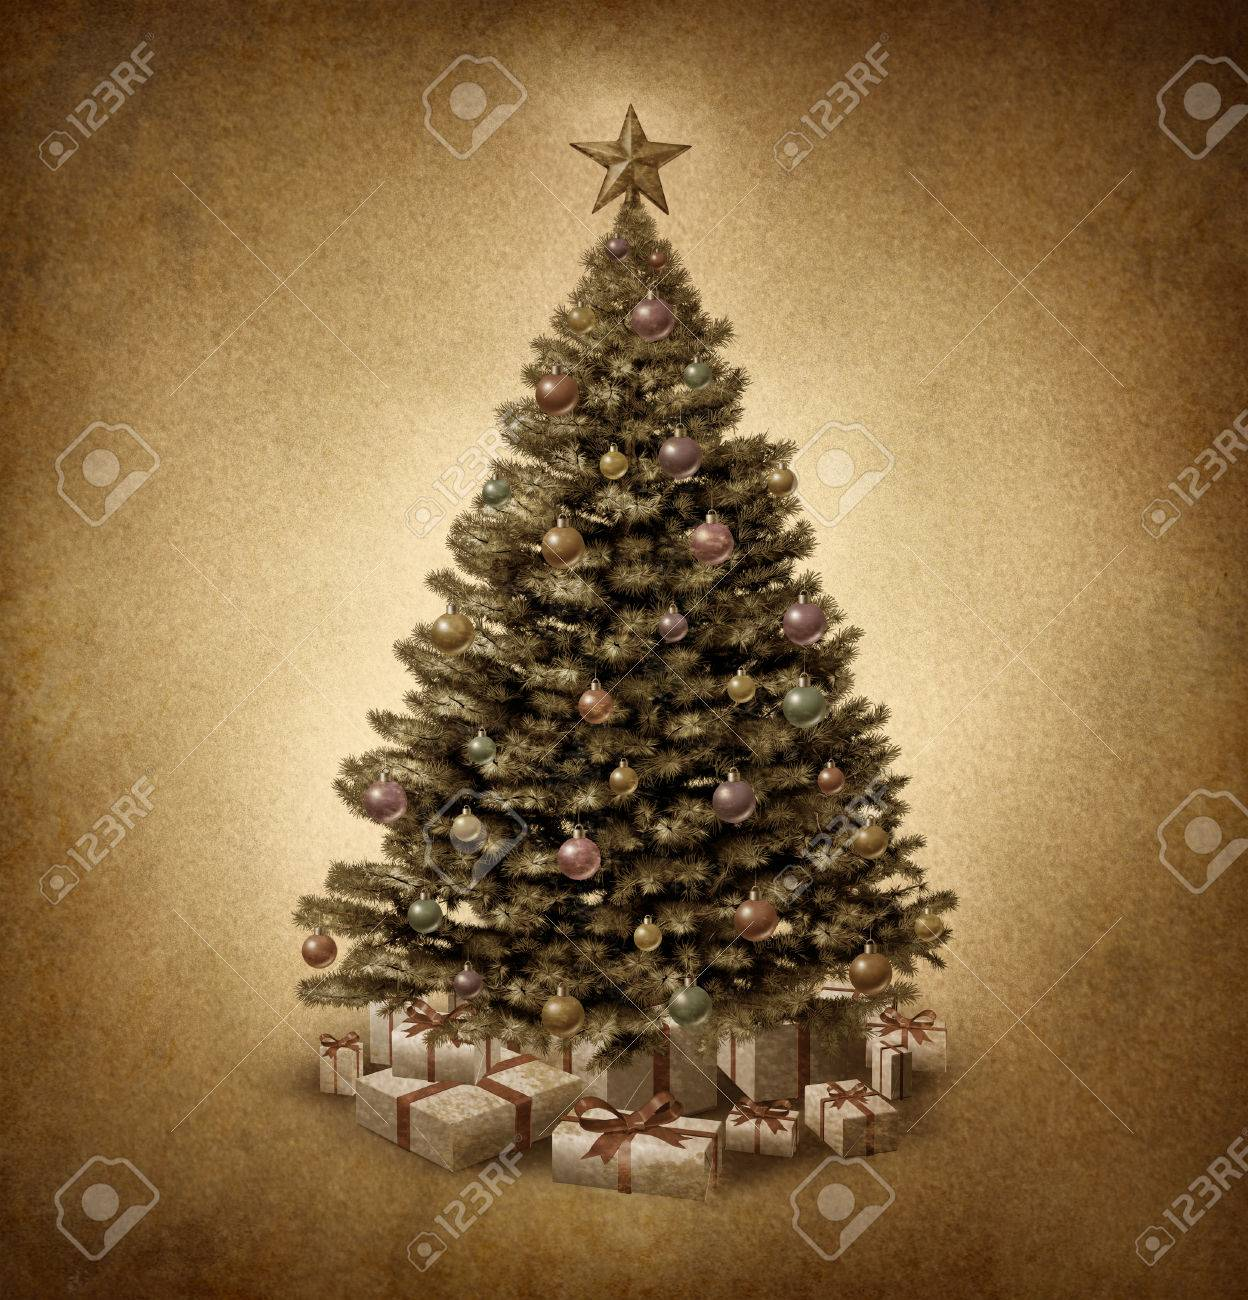 Old Fashioned Christmas Pictures.Old Fashioned Christmas Tree On Vintage Parchment Paper Grunge